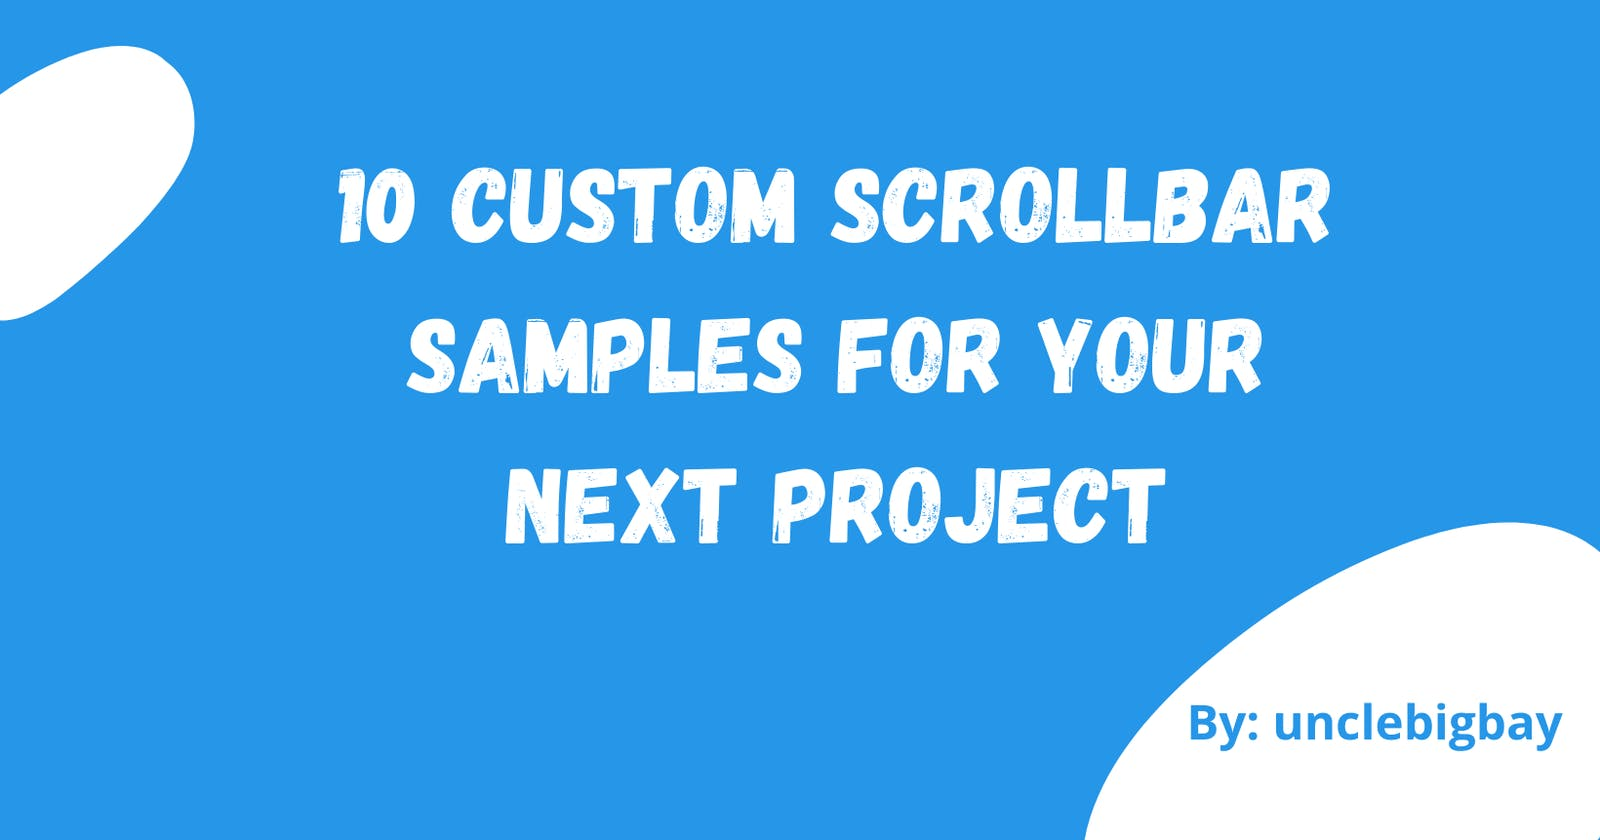 10 Custom Scrollbar Samples for your next project